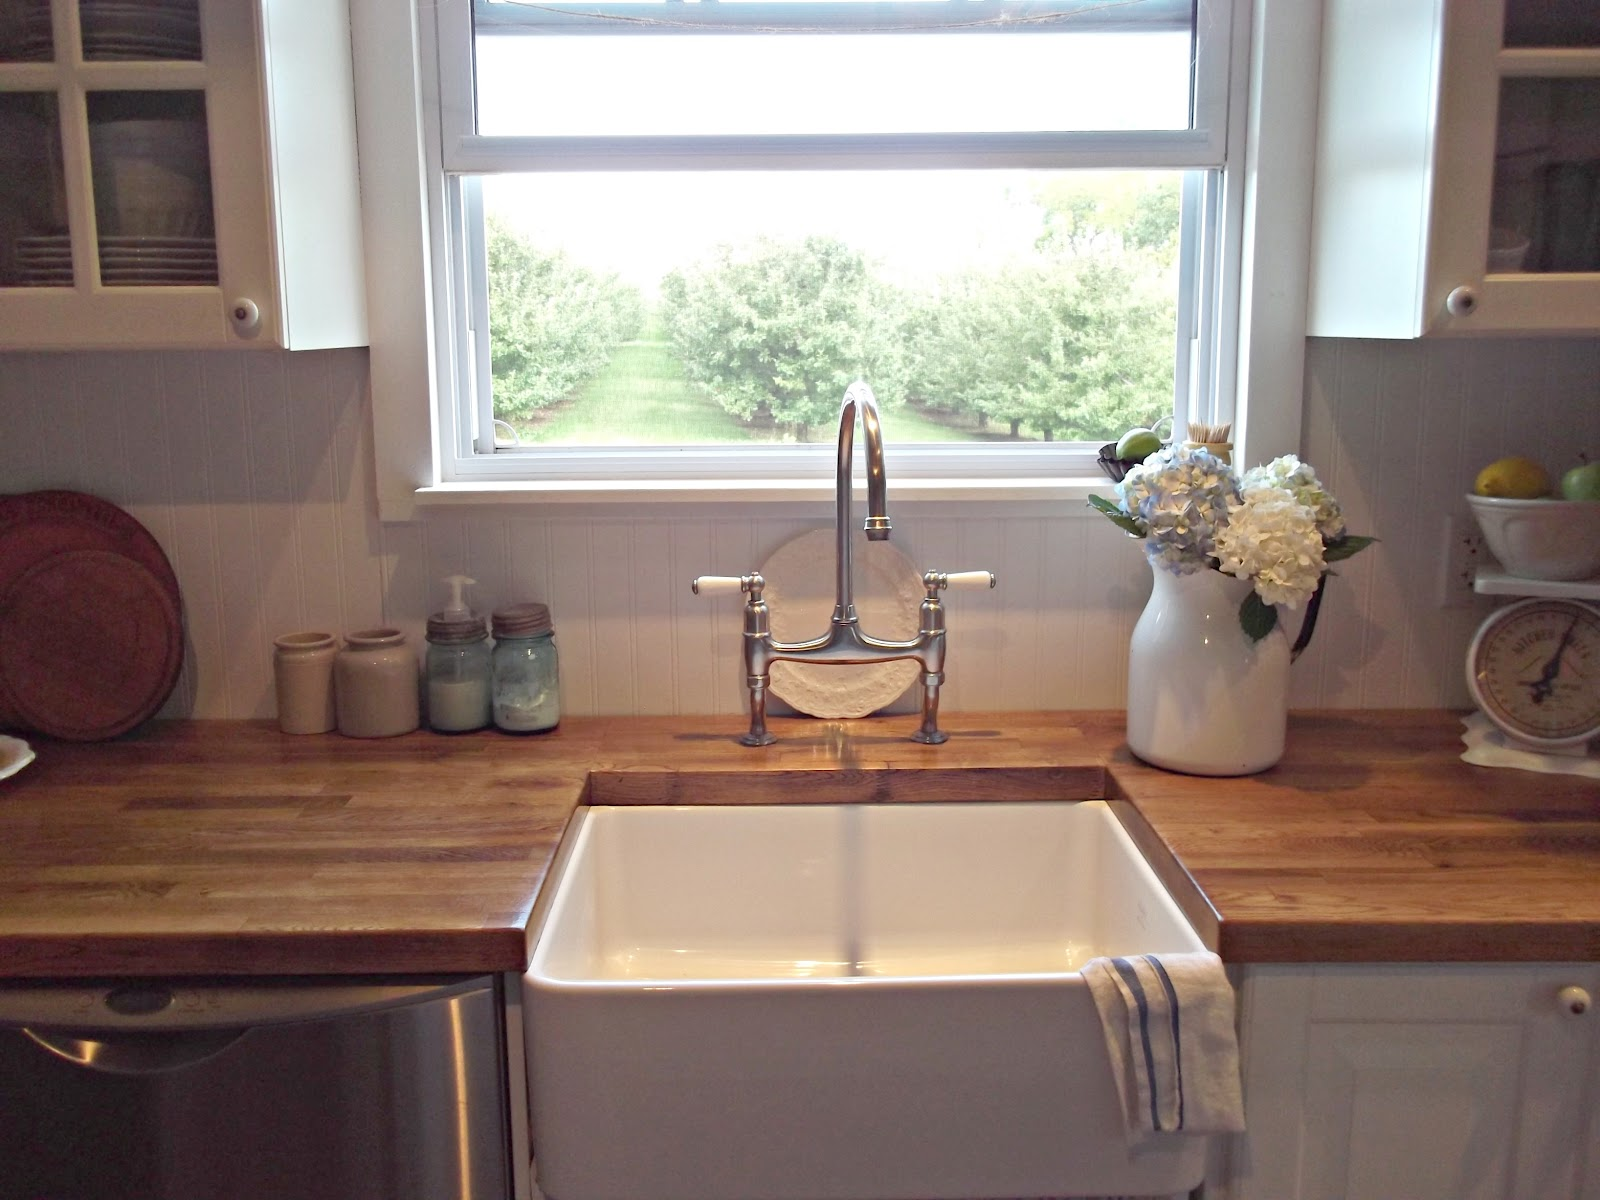 Kitchen Sink Farm Style : Rustic Farmhouse: A Farm Style Sink